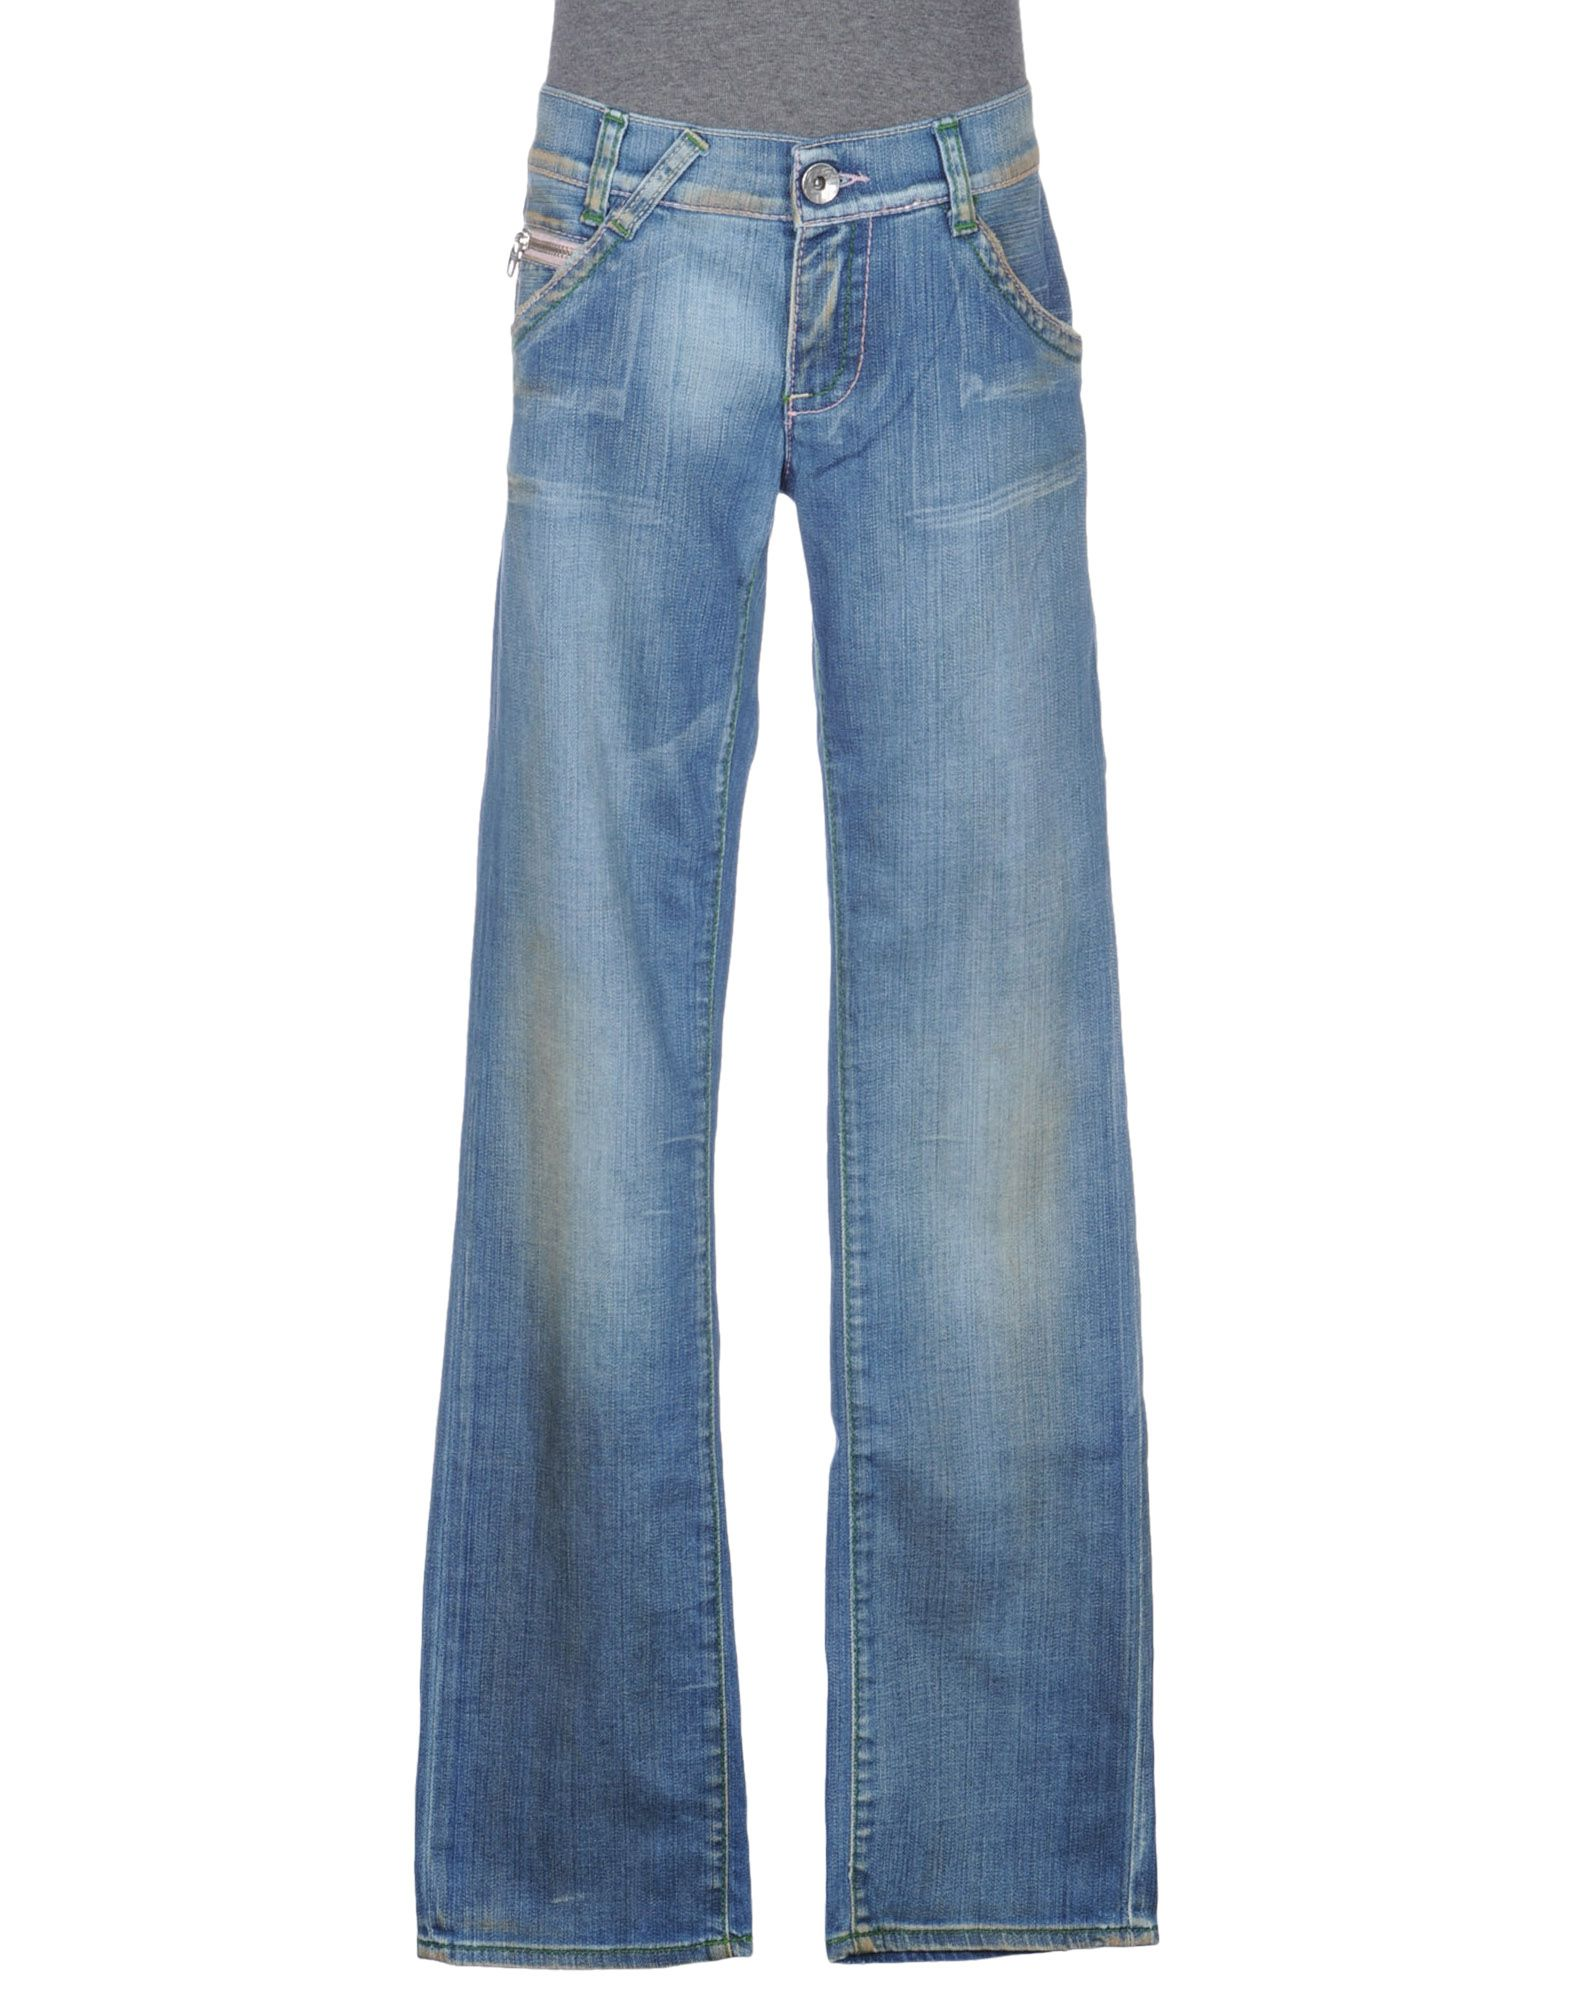 MISS SIXTY Jeans - Item 42209178